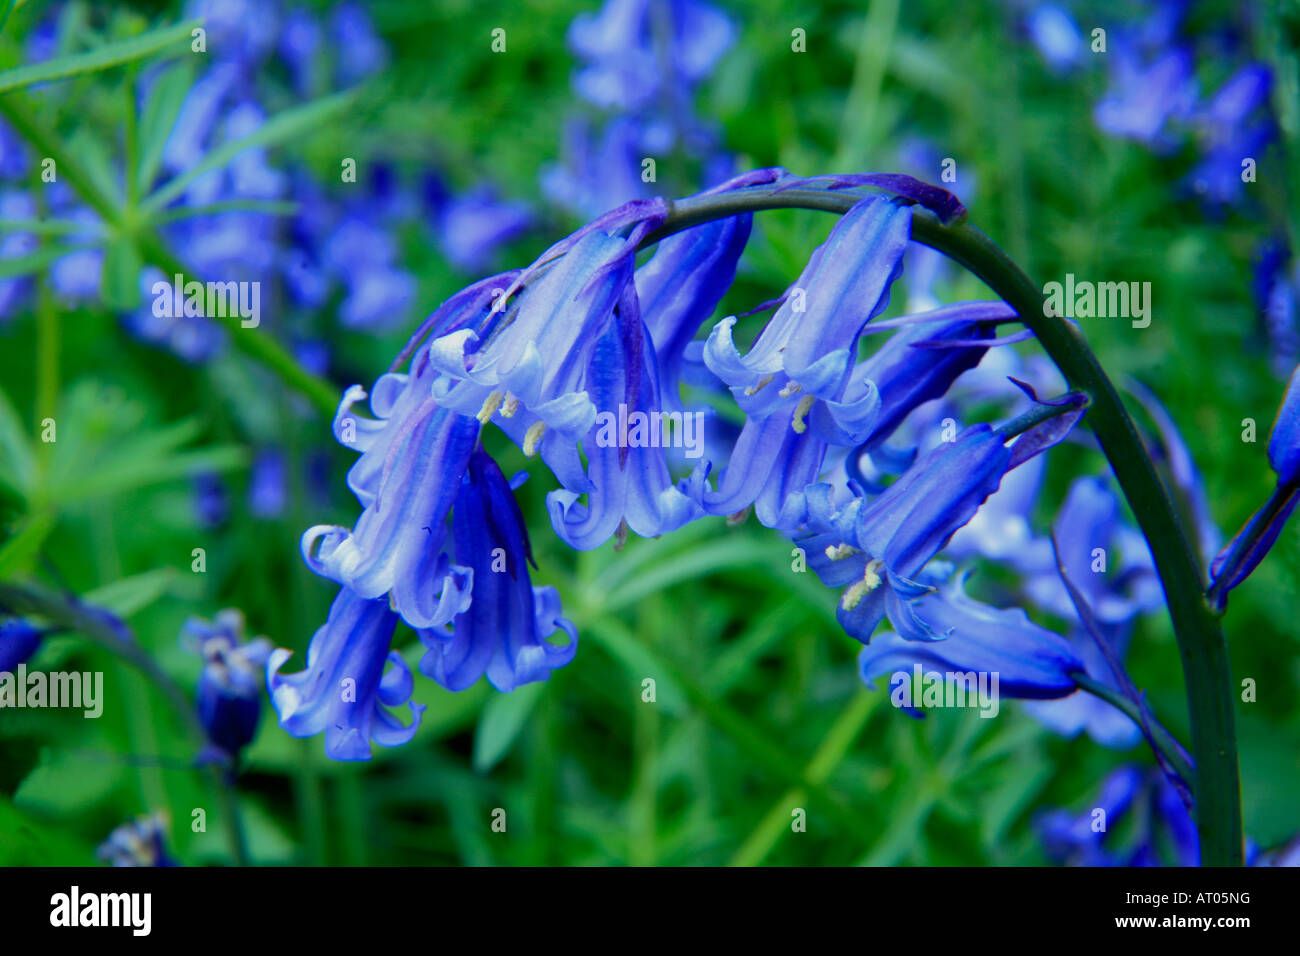 Bluebells Wild Spring Flowers Hyacinthoides Non Scripta In A